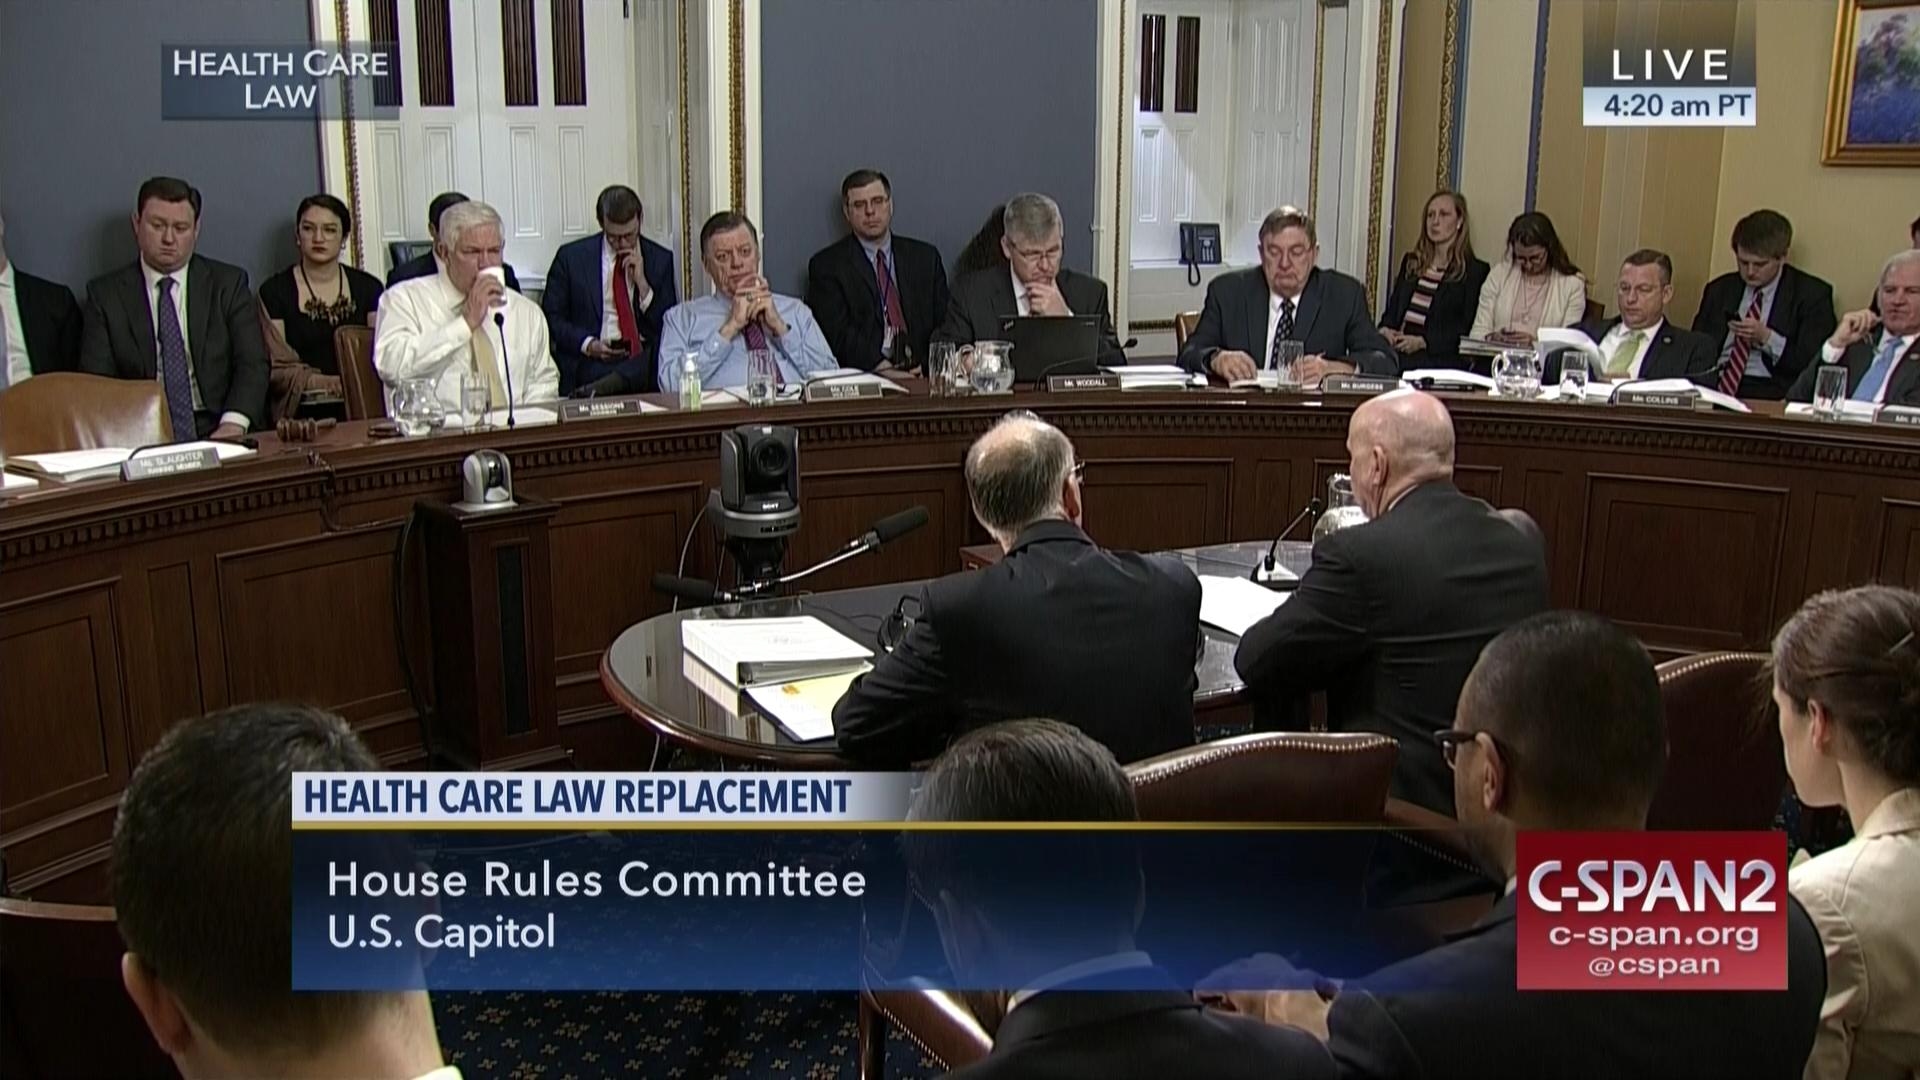 Good House Rules Committee Meeting On Health Care Bill